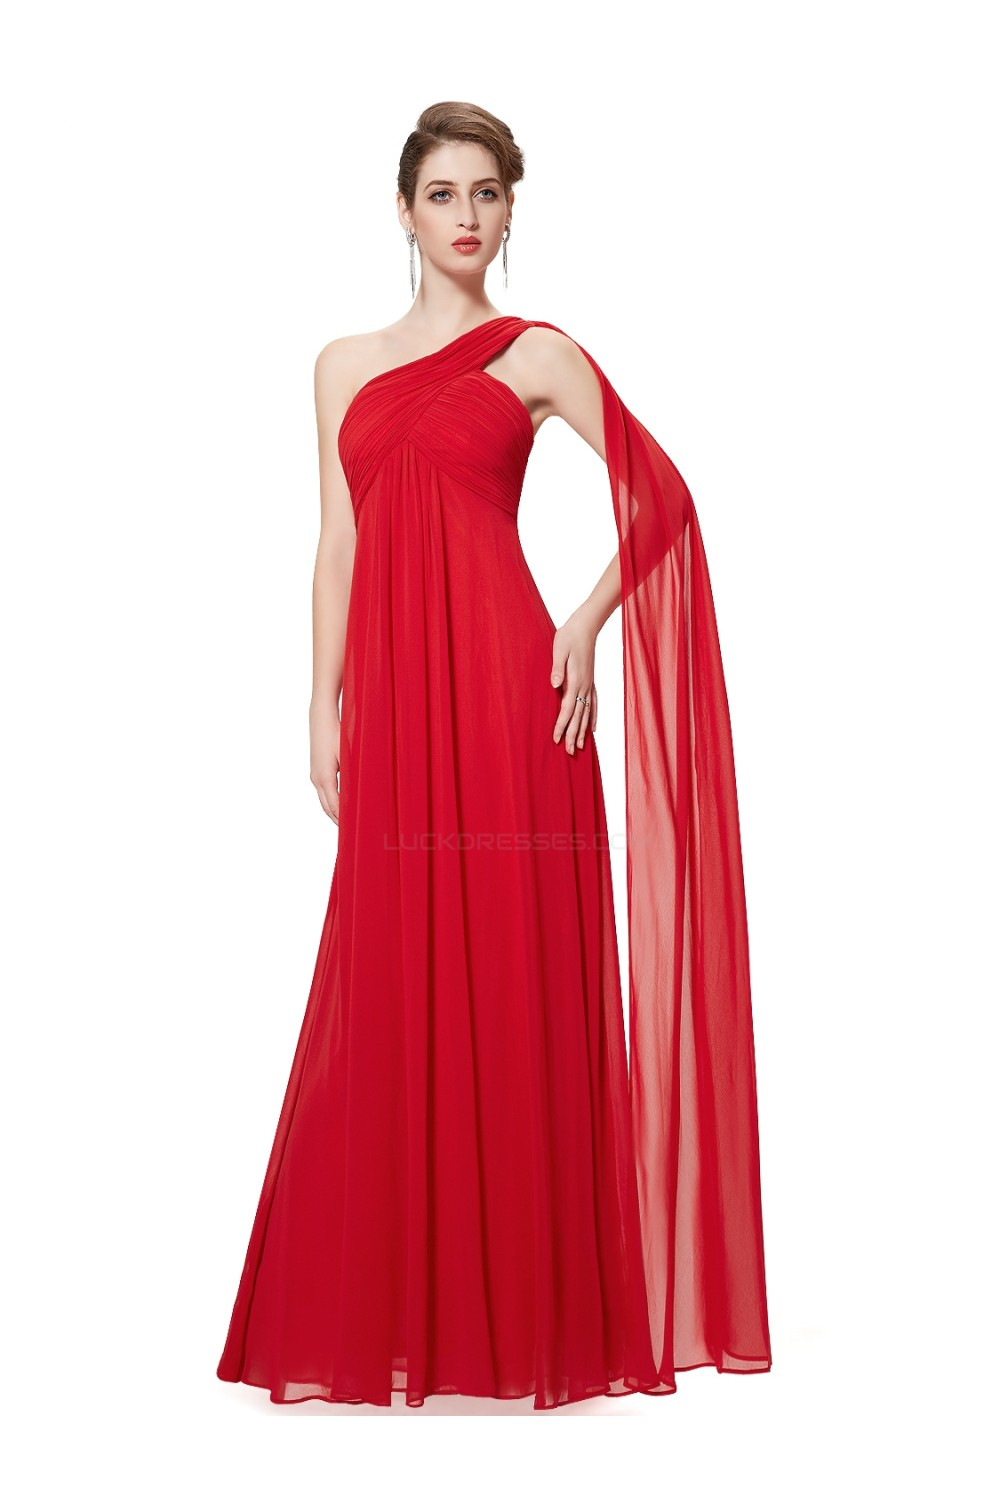 8ae94779785 Empire One-Shoulder Long Red Chiffon Bridesmaid Dresses Evening ...